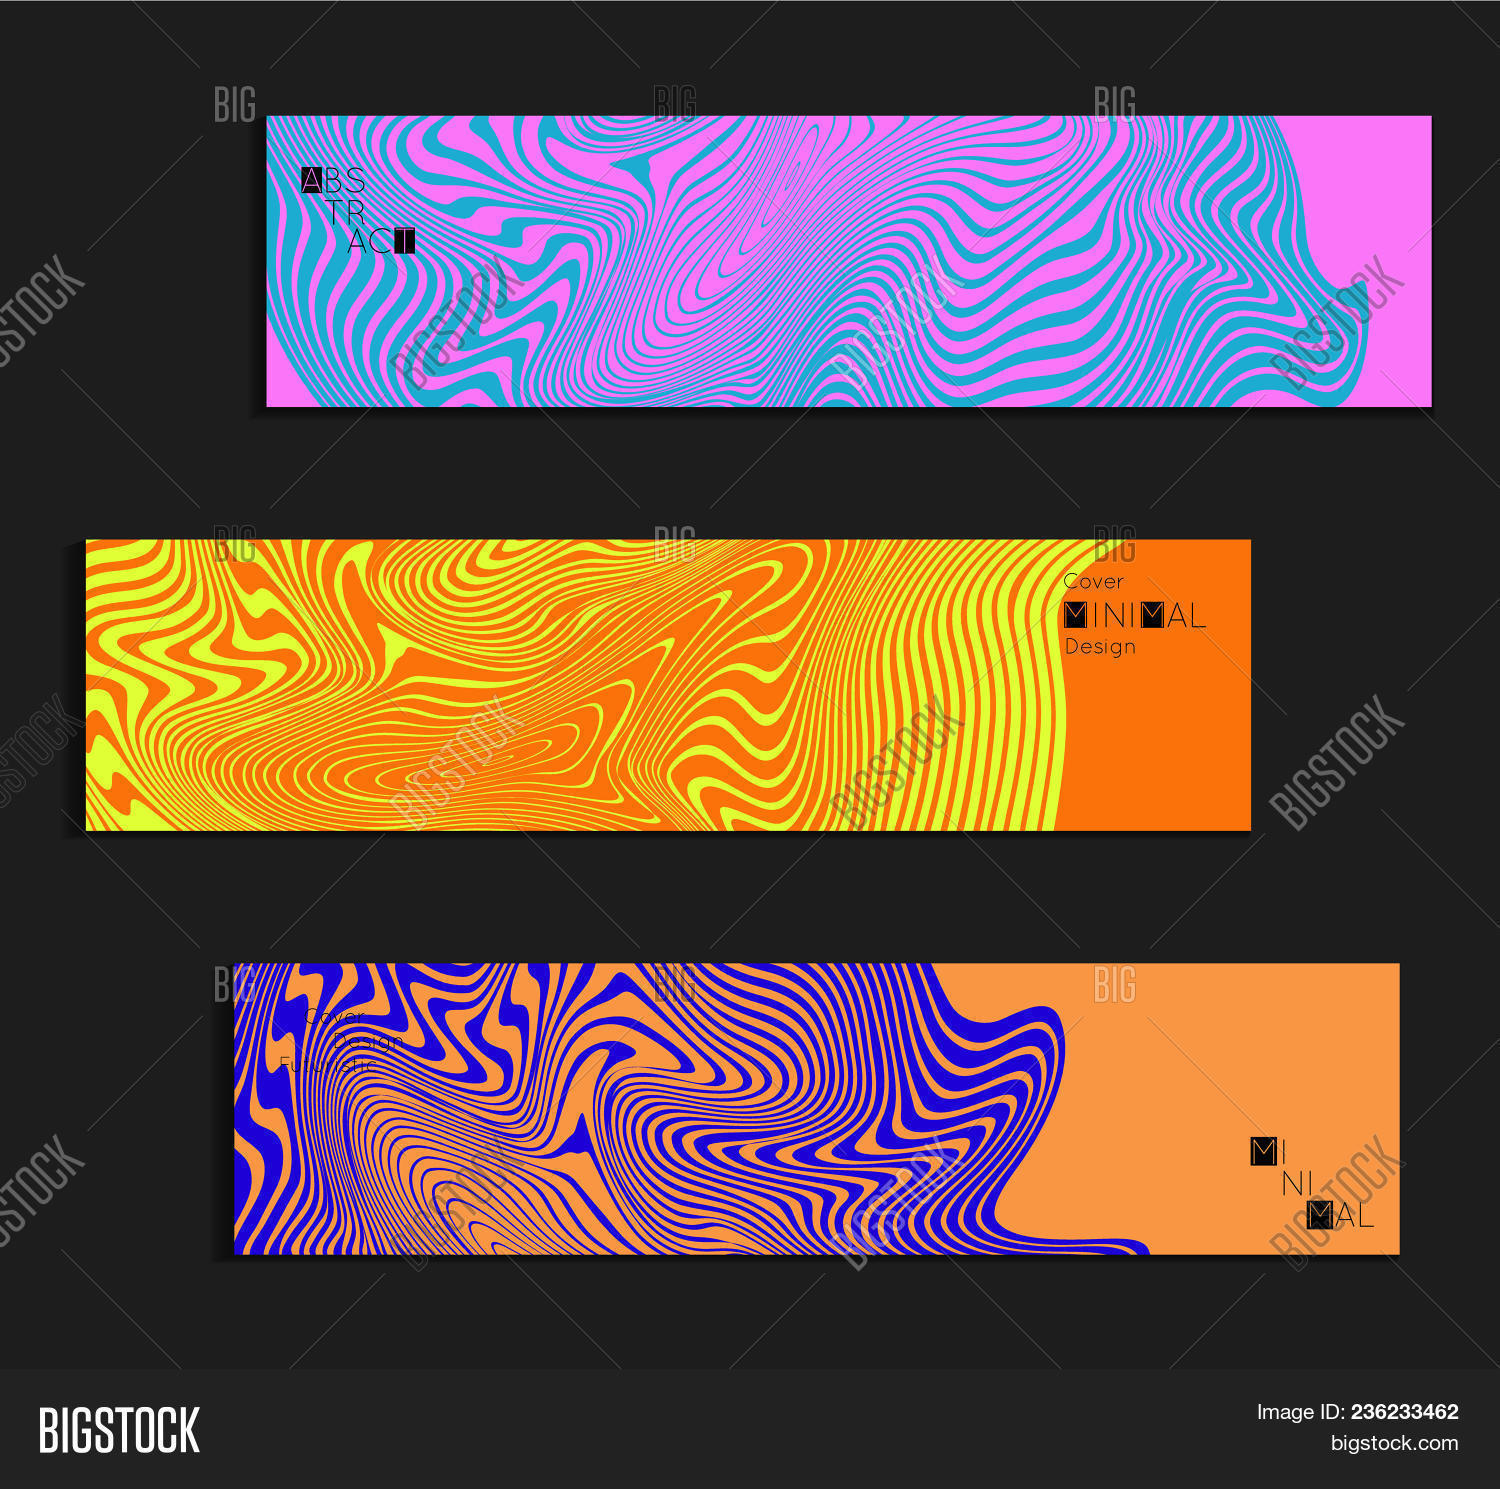 3d,abstract,ad,advertisement,background,banner,black,blend,card,cover,dark,dynamic,future,futuristic,geometric,geometry,grid,media,mesh,minimal,net,pattern,placard,poster,print,promotion,shape,simple,social,template,wed